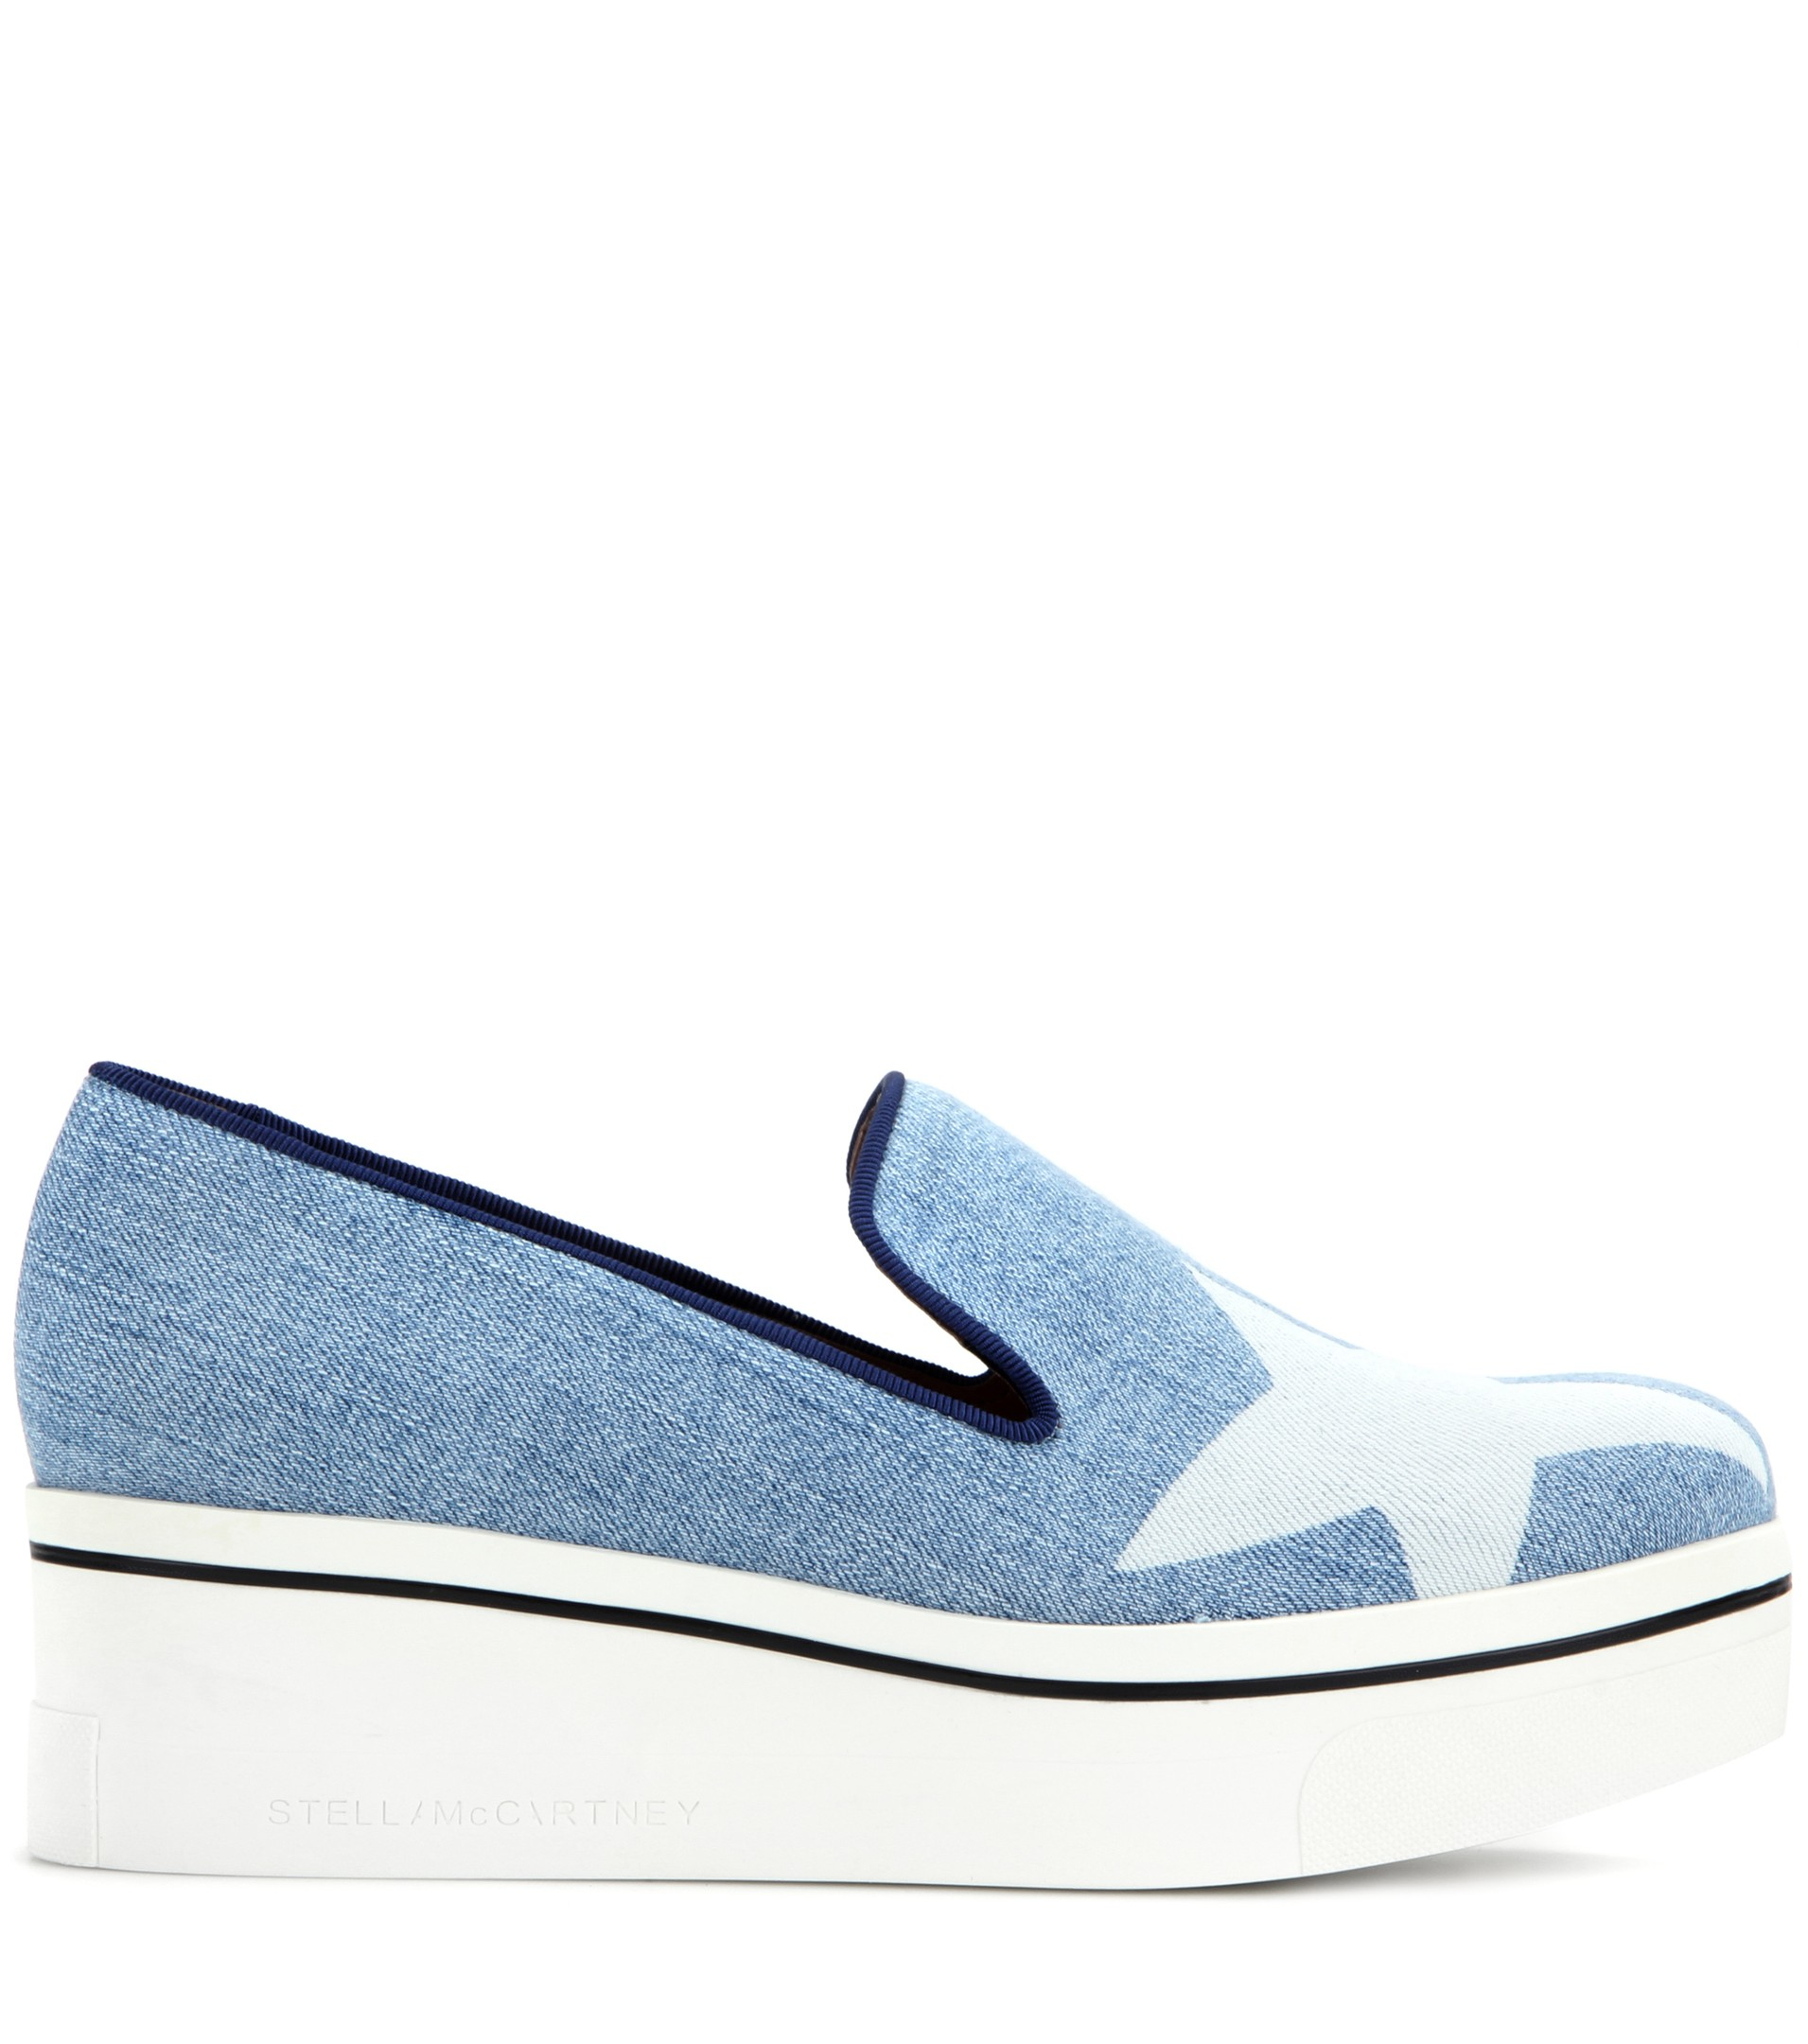 Stella McCartney Binx Stars Denim Loafer Platform Sneakers LPPutErS